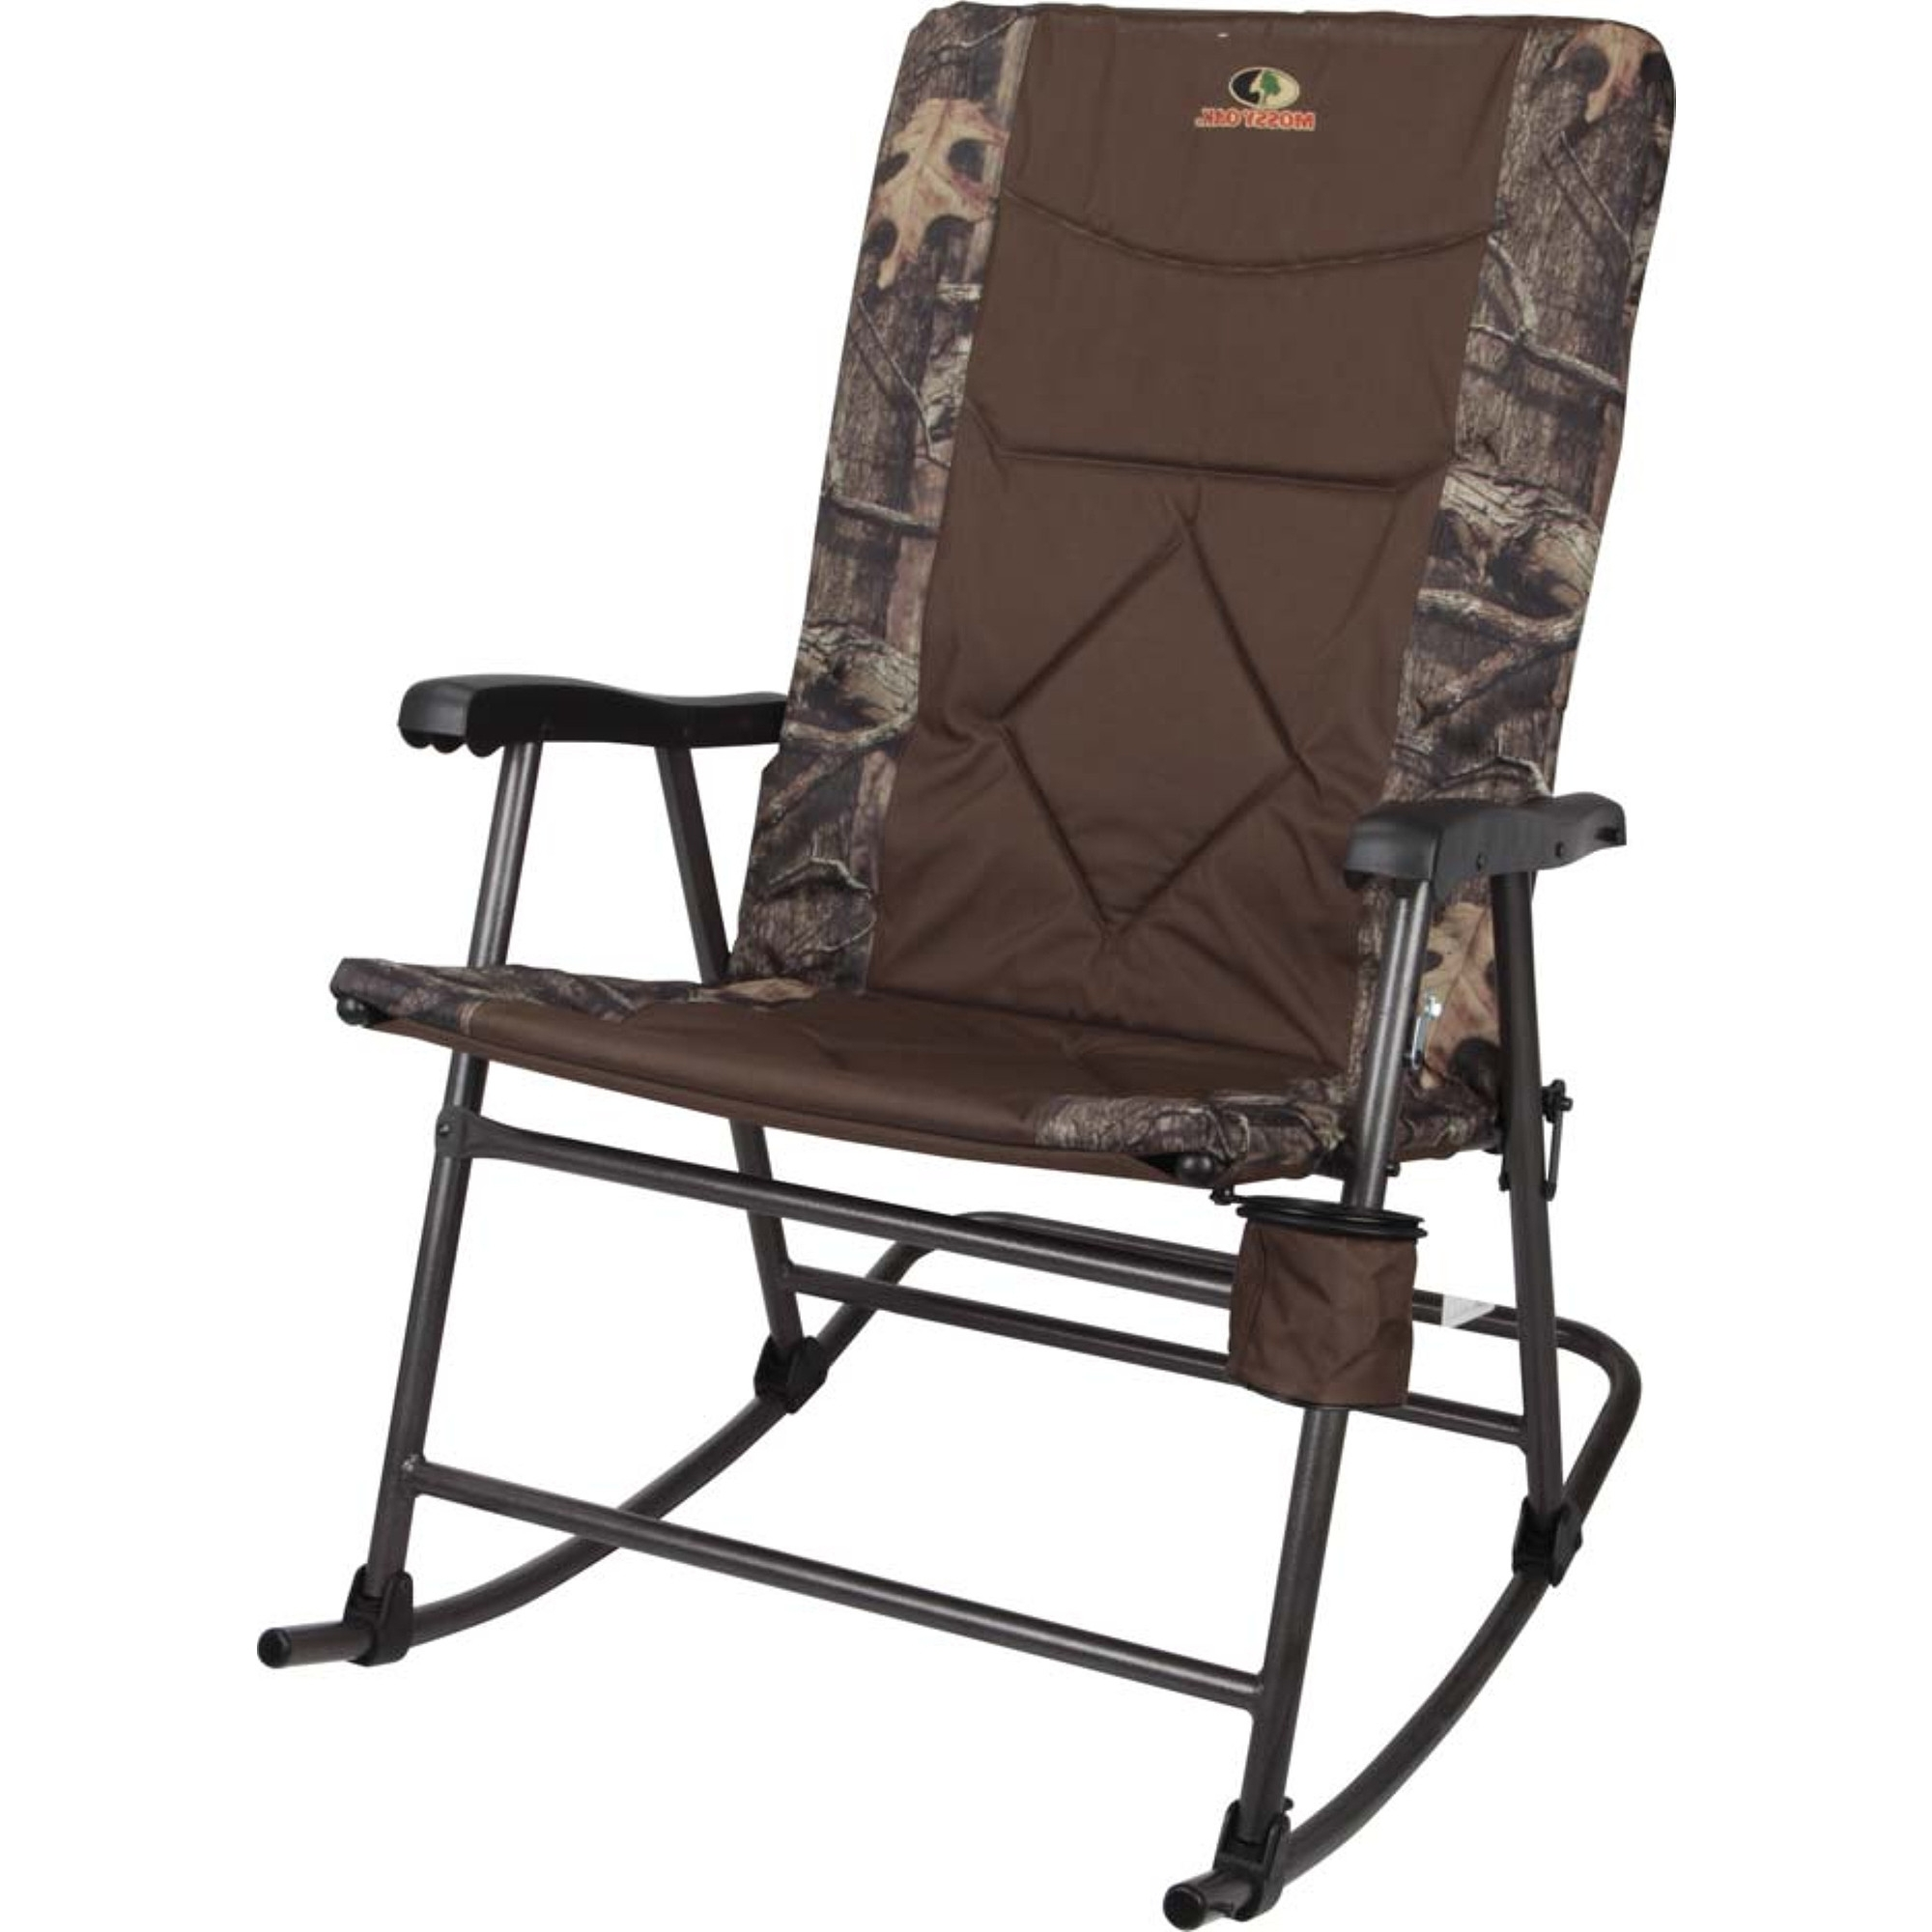 Well Liked Walmart Rocking Chairs Inside Cushion : Bedroom Patio Bench With Cushions Amazing Outdoor Chair (View 17 of 20)